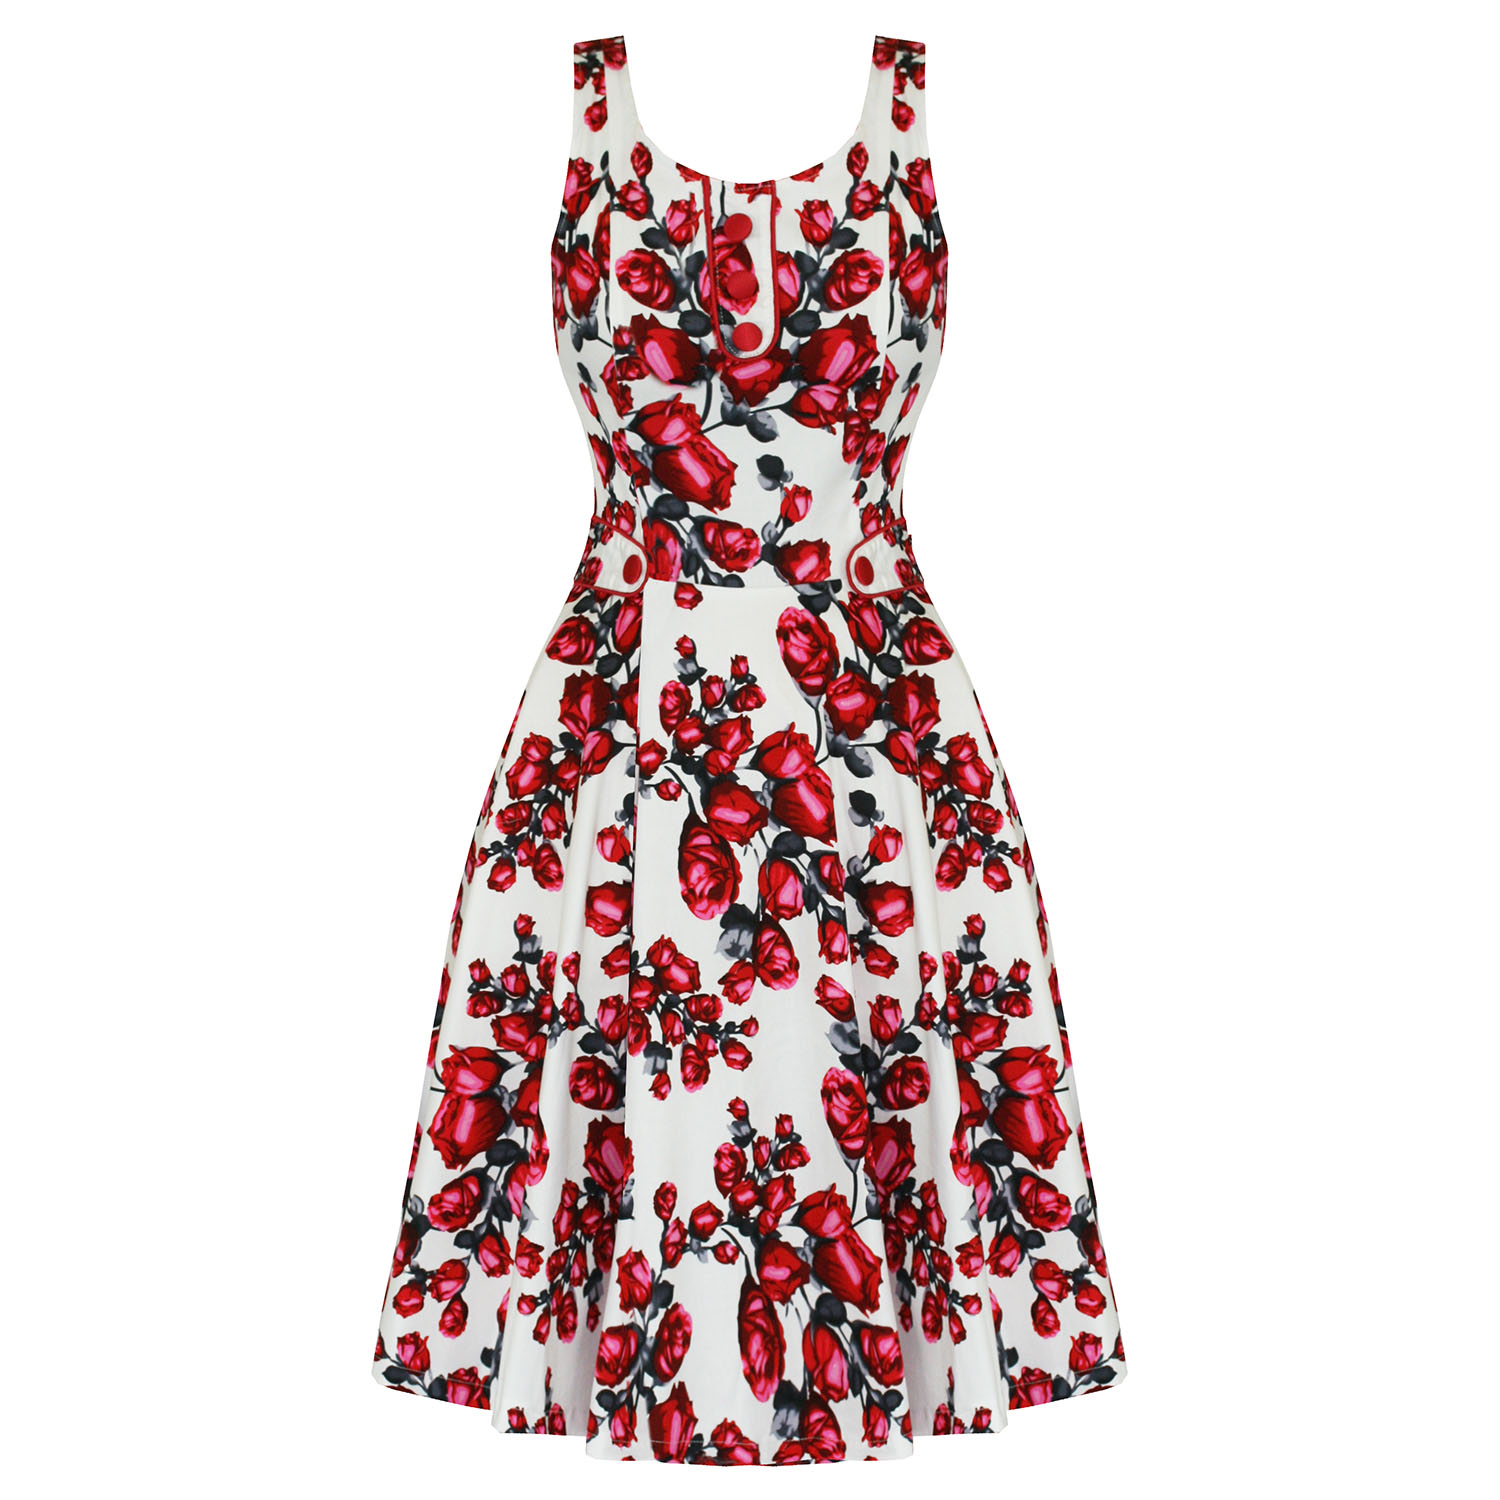 Voodoo Vixen Ladies New White Red Floral 50S Vintage Rockabilly Party Tea Dress Preview